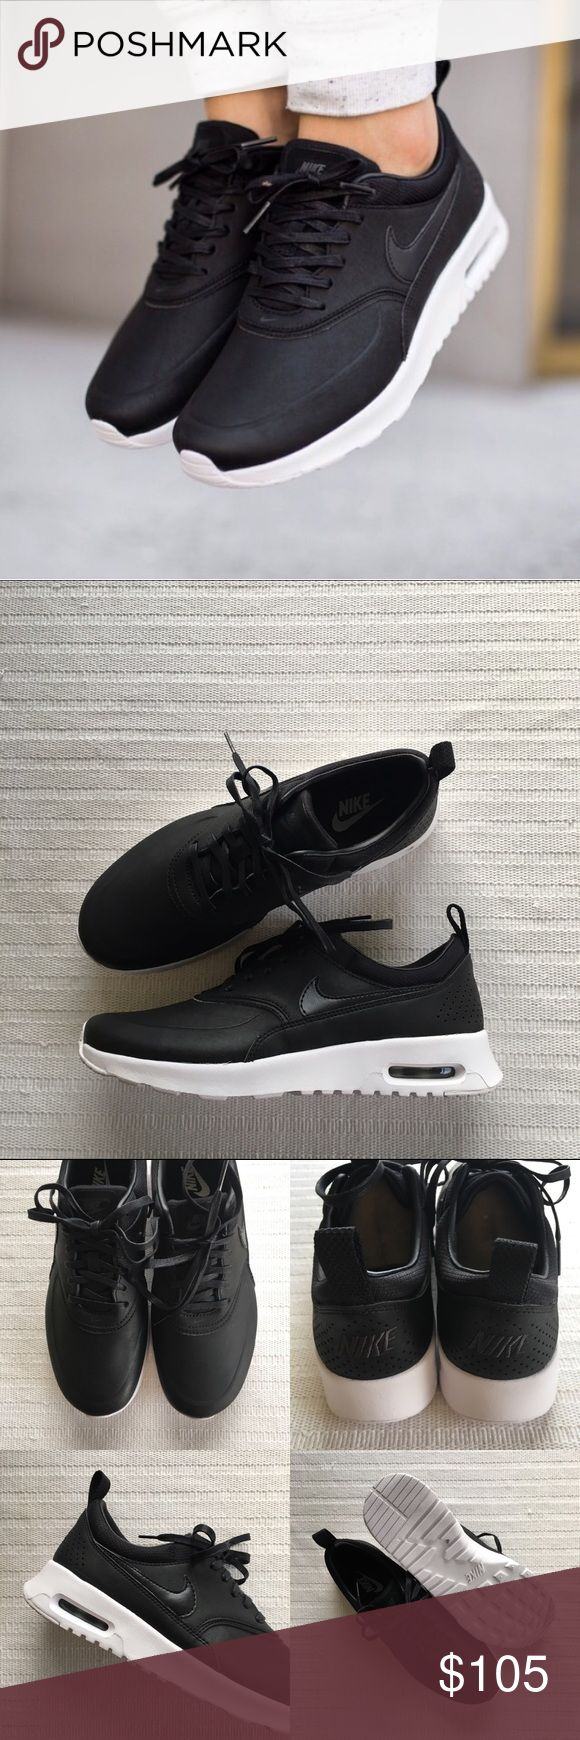 Women's Nike Air Max Thea Premium Sneakers Women's Nike Air Max Thea Premium Sneakers Style/Color: 616723-007  • Women's size 7  • NEW in box (no lid) • No trades •100% authentic Nike Shoes Sneakers